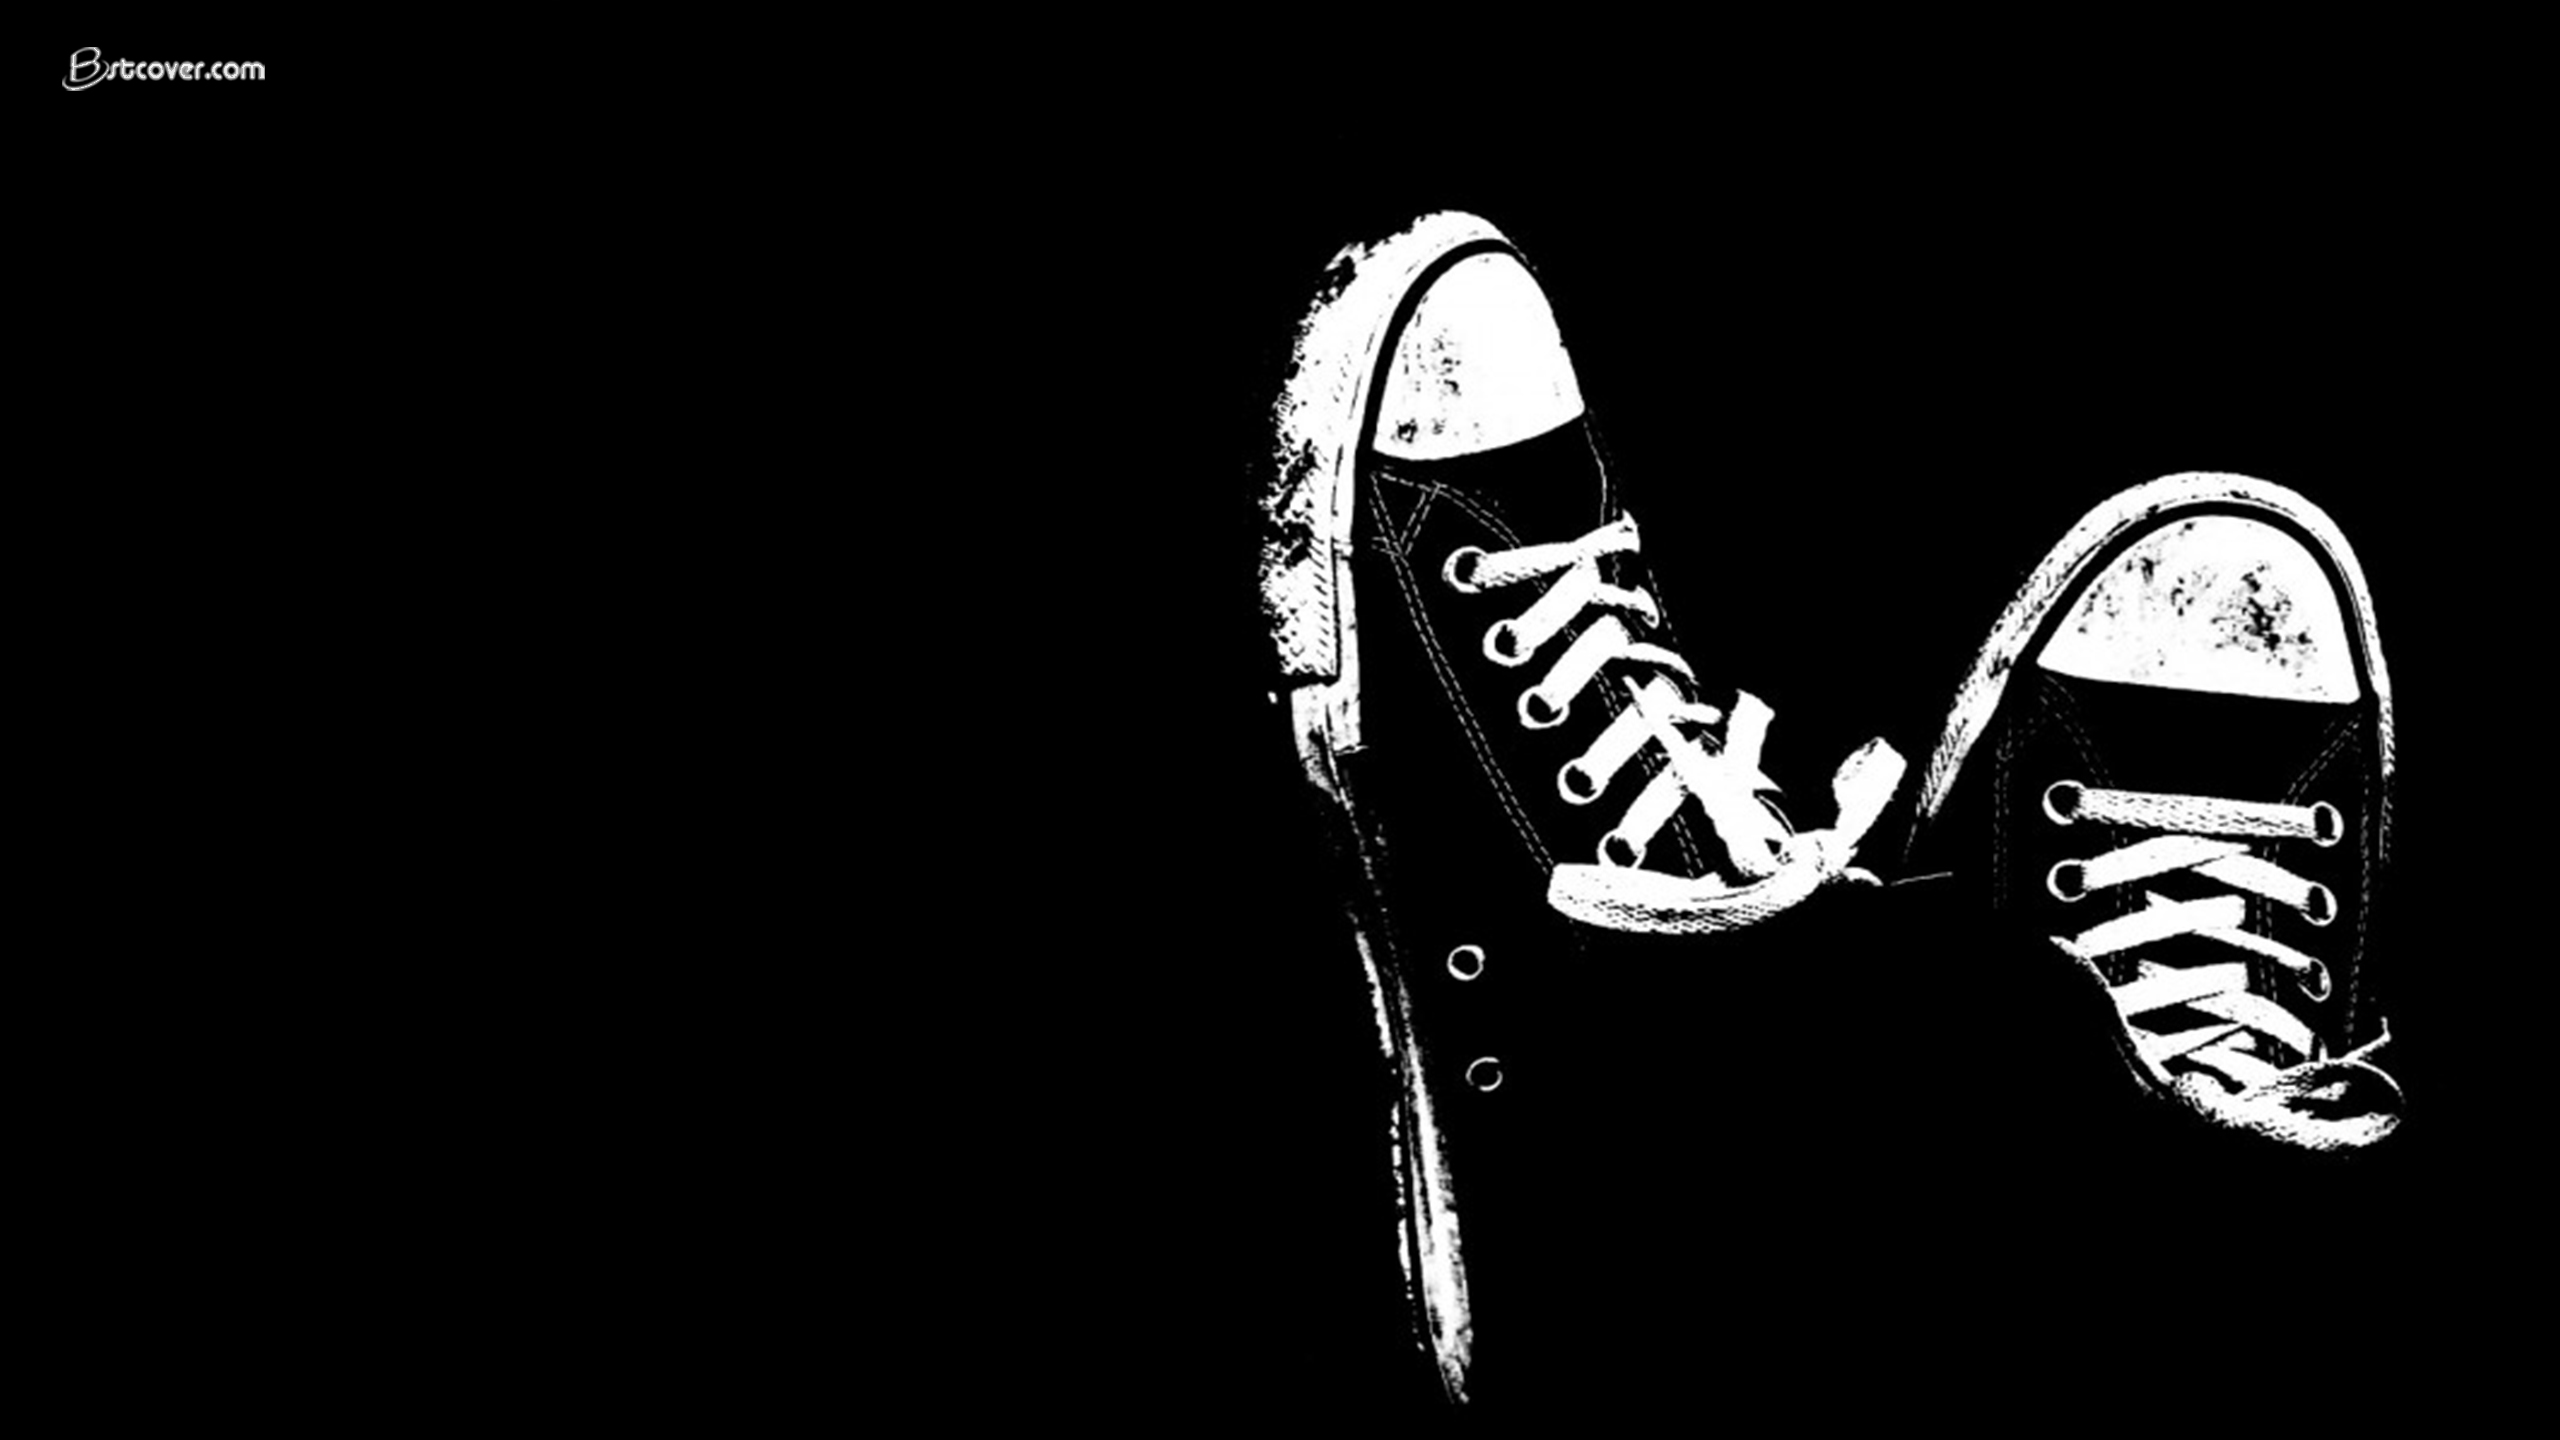 Cool White and Black Background HD Wallpape youtube Cover photos 2560x1440